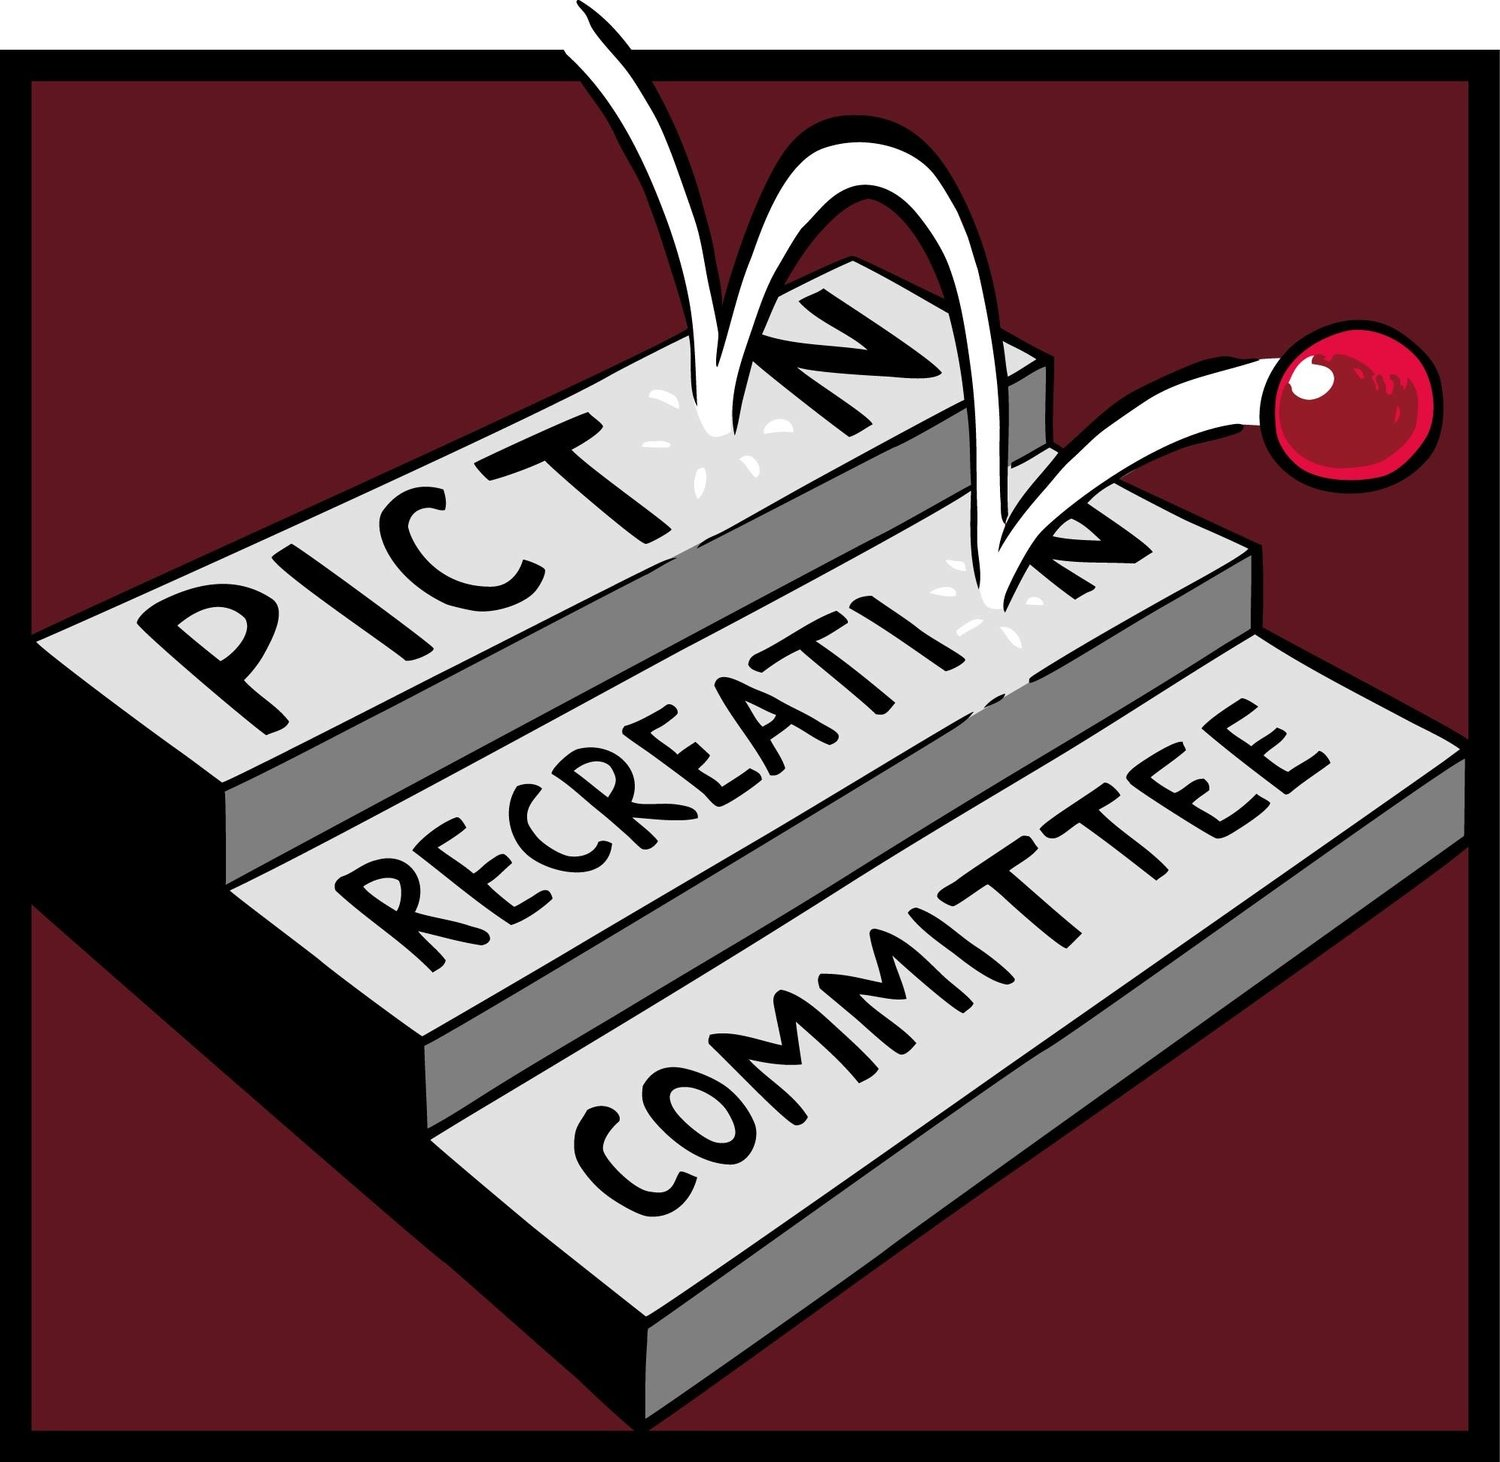 Picton Recreation Committee